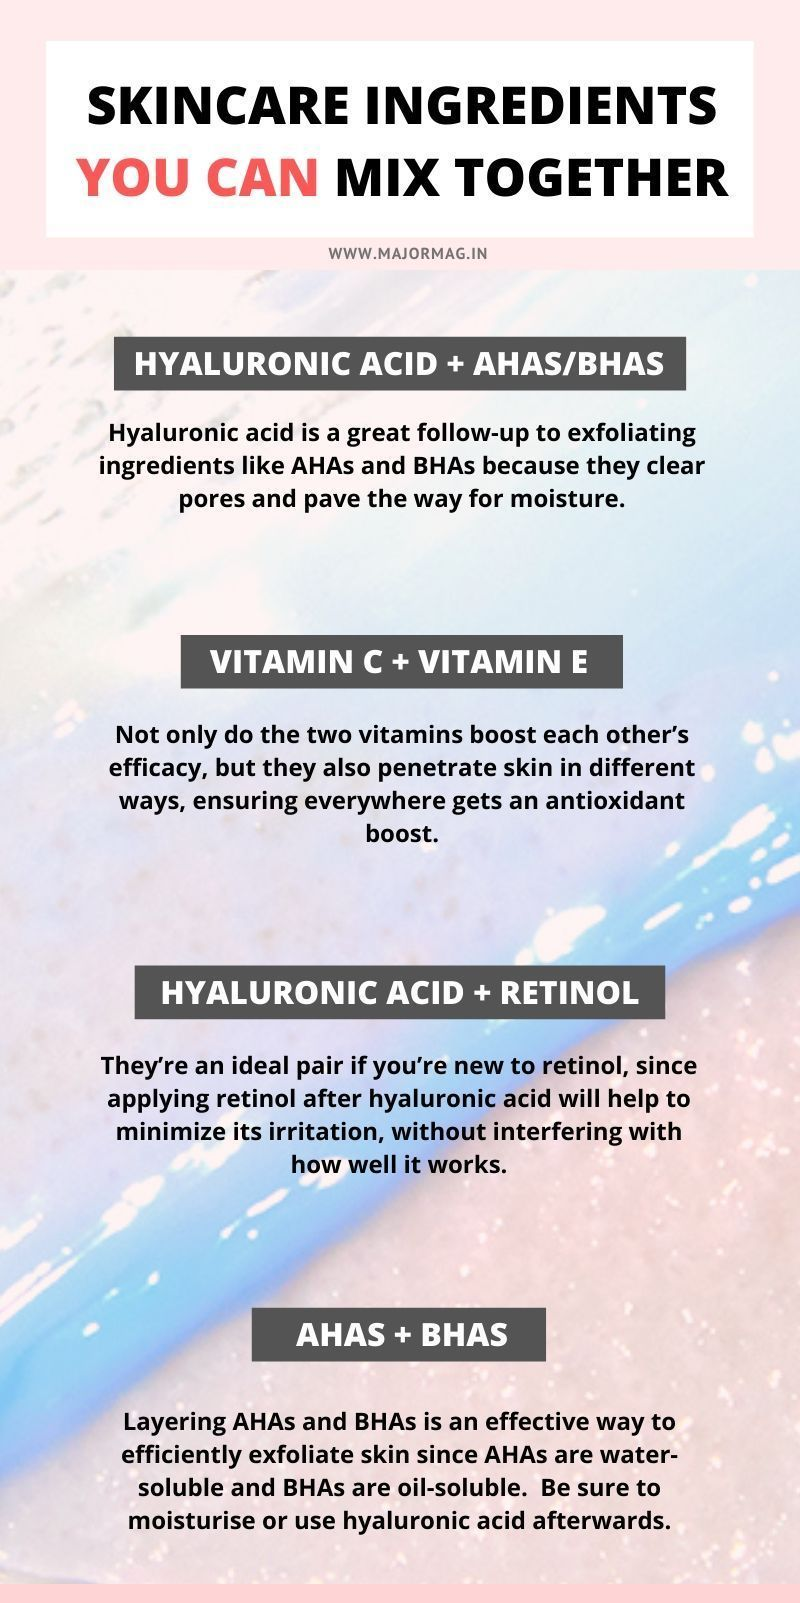 Can You Mix Powerful Skin Care Ingredients Like Retinol Vitamin C And Ahas Bhas Tog Skincare Ingredients Natural Skin Care Ingredients Dermatology Skin Care